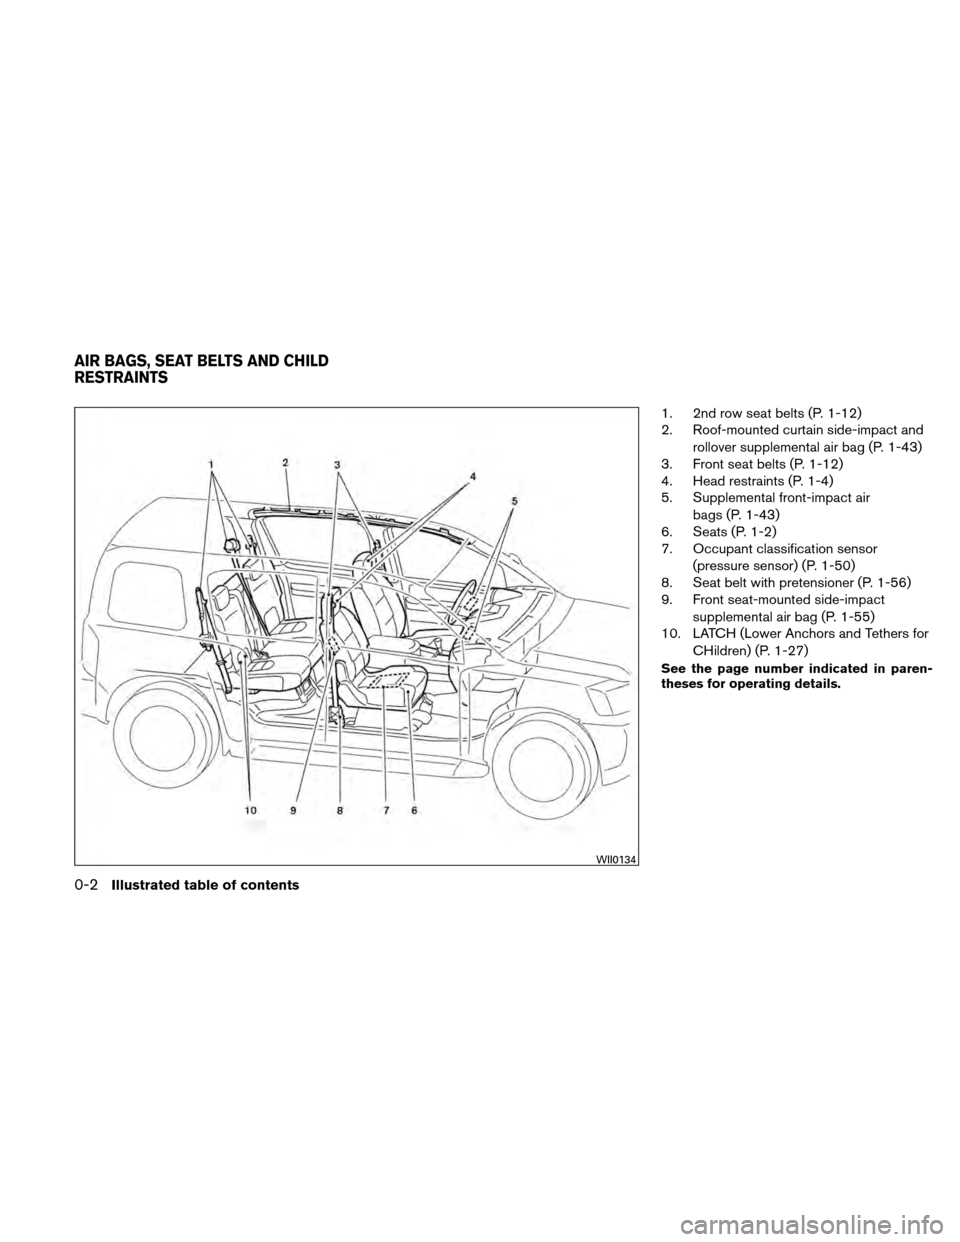 NISSAN XTERRA 2011 N50 / 2.G Owners Manual, Page 9